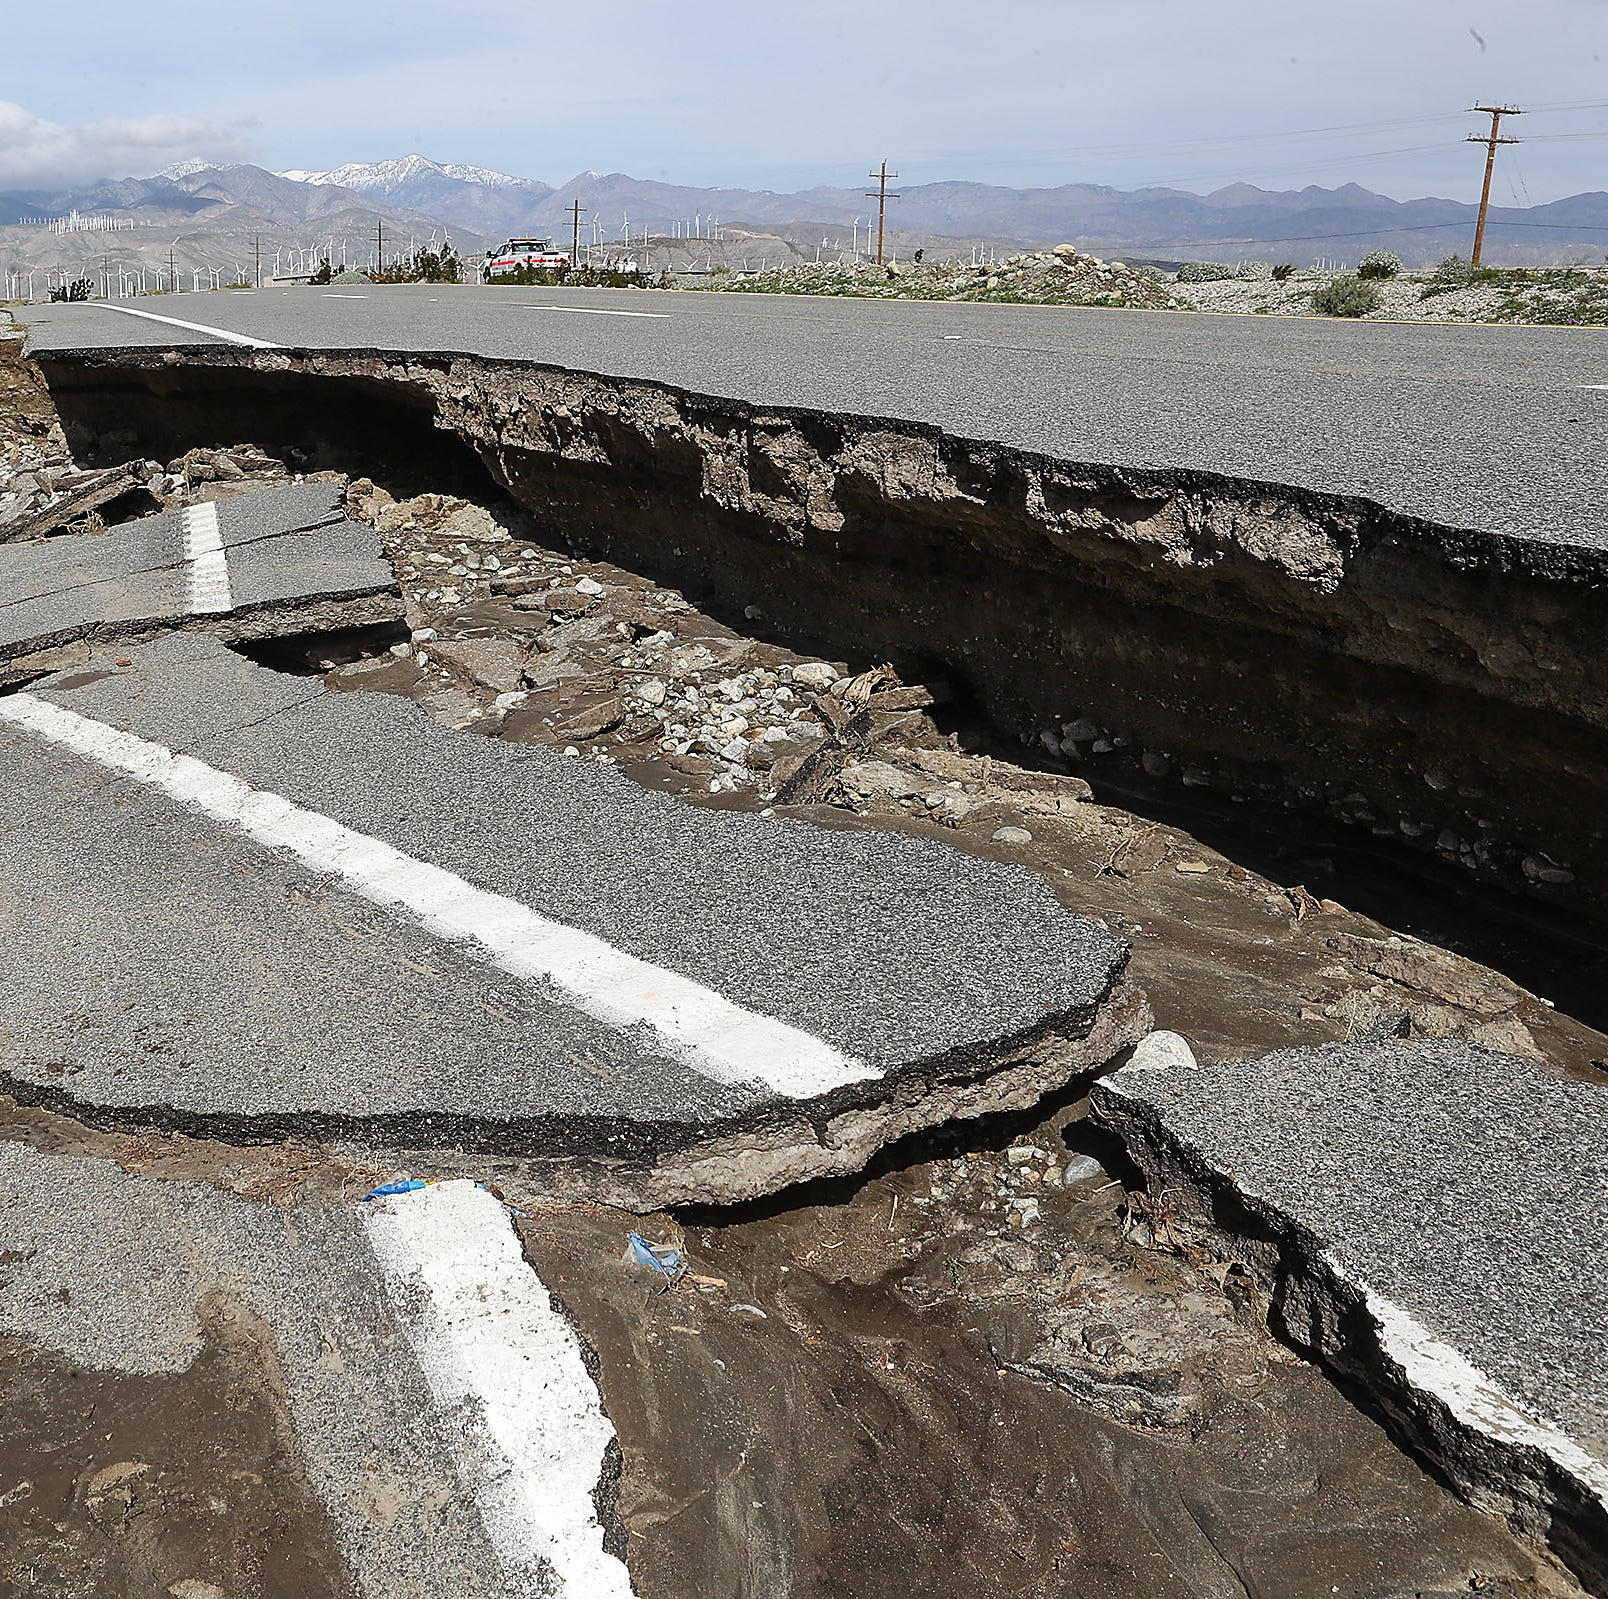 Highway 111 near Palm Springs is expected to reopen Sunday night, Caltrans official says